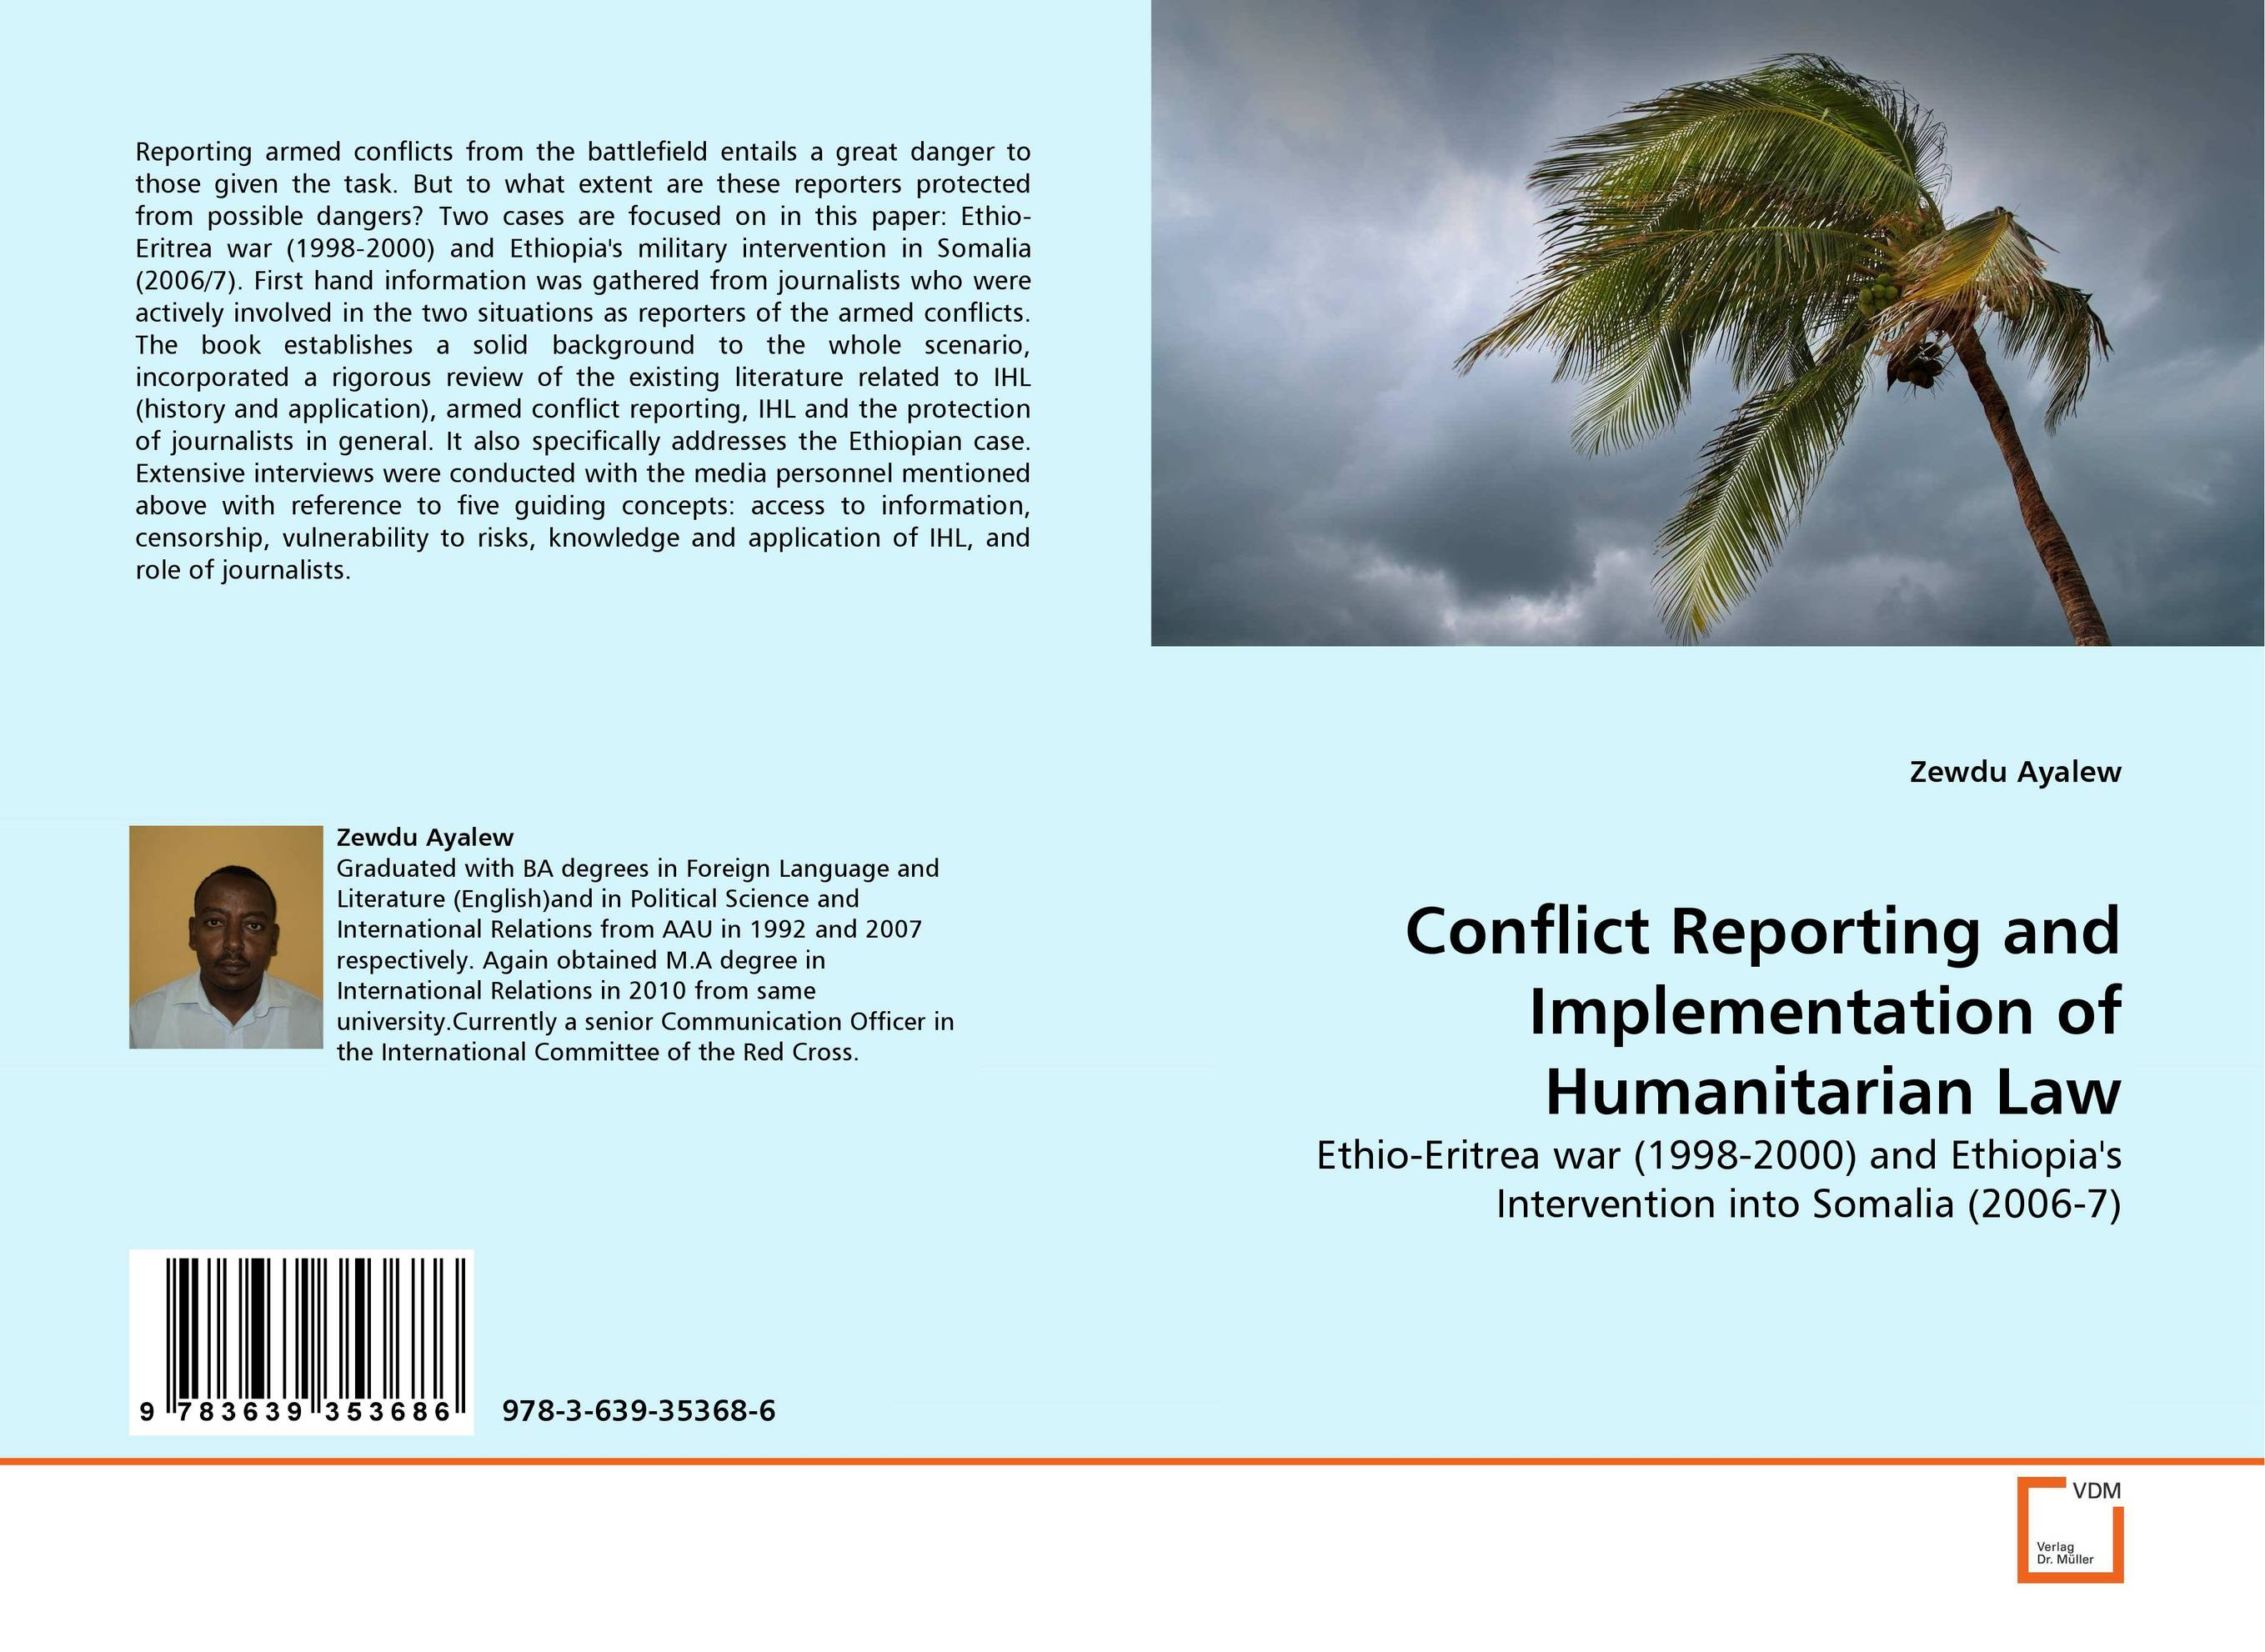 Conflict Reporting and Implementation of Humanitarian Law oliver ramsbotham humanitarian intervention in contemporary conflict